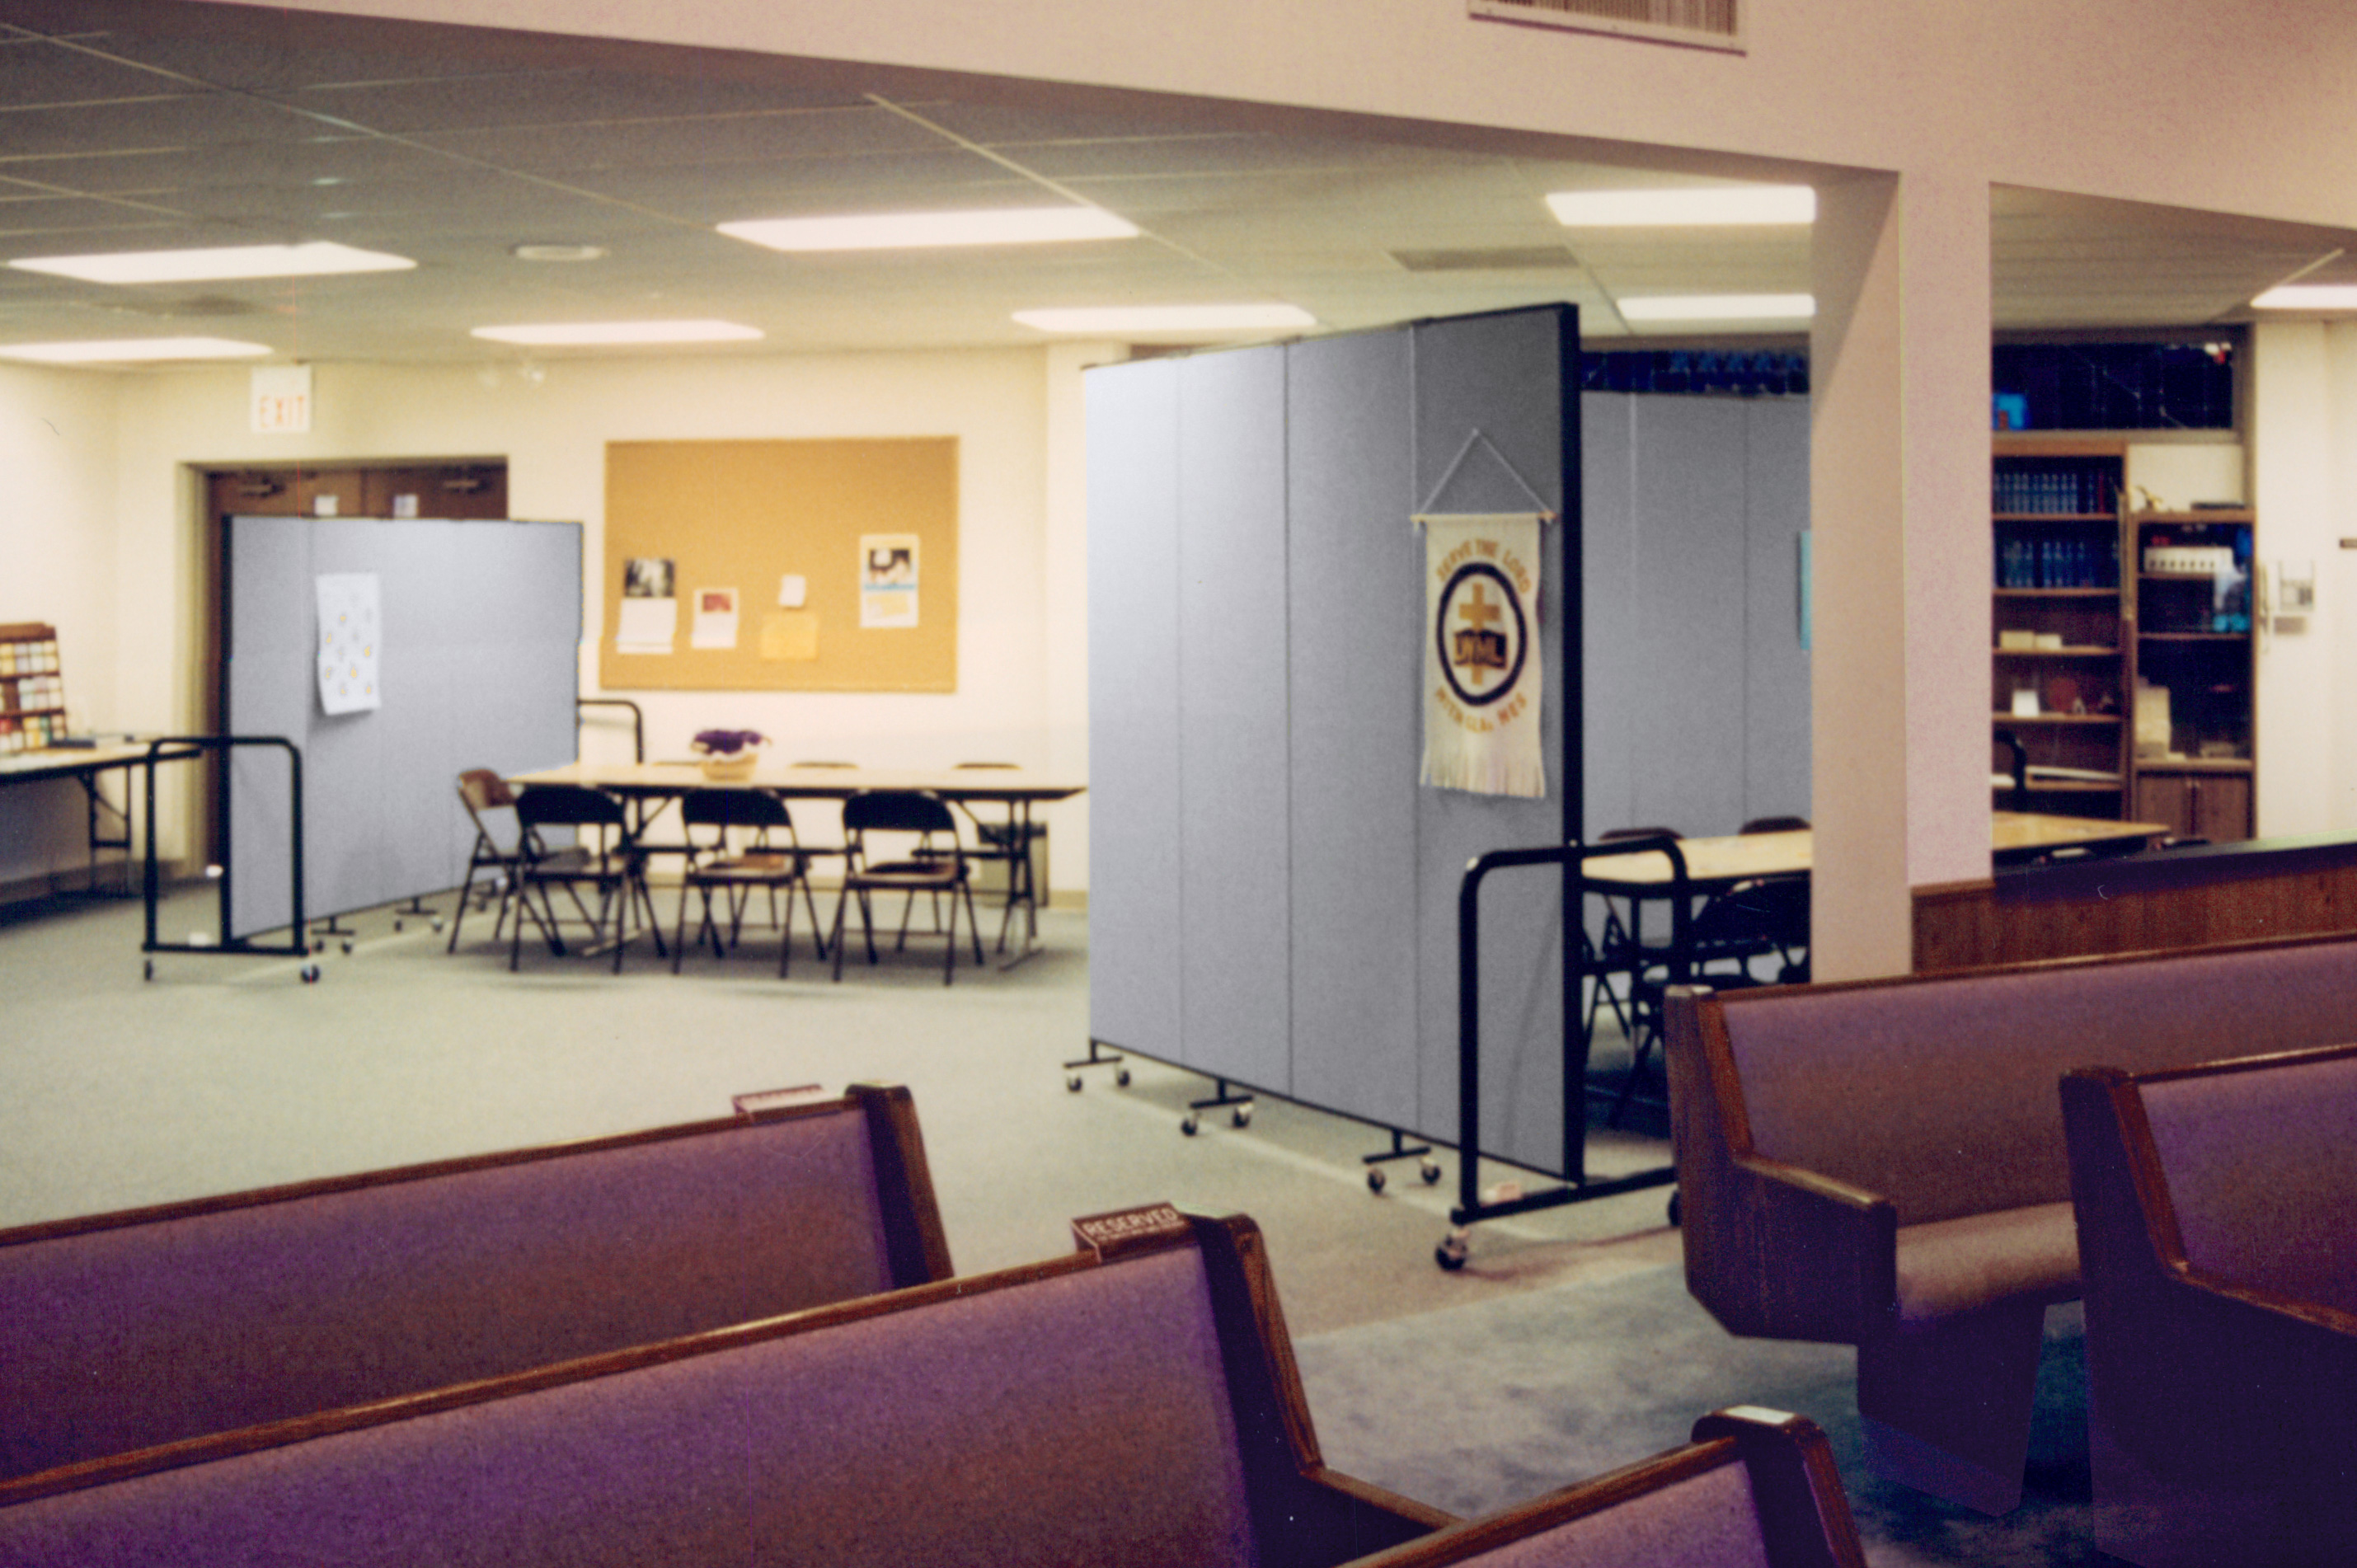 A room divider blocks an entrance to a church sanctuary in a basement room